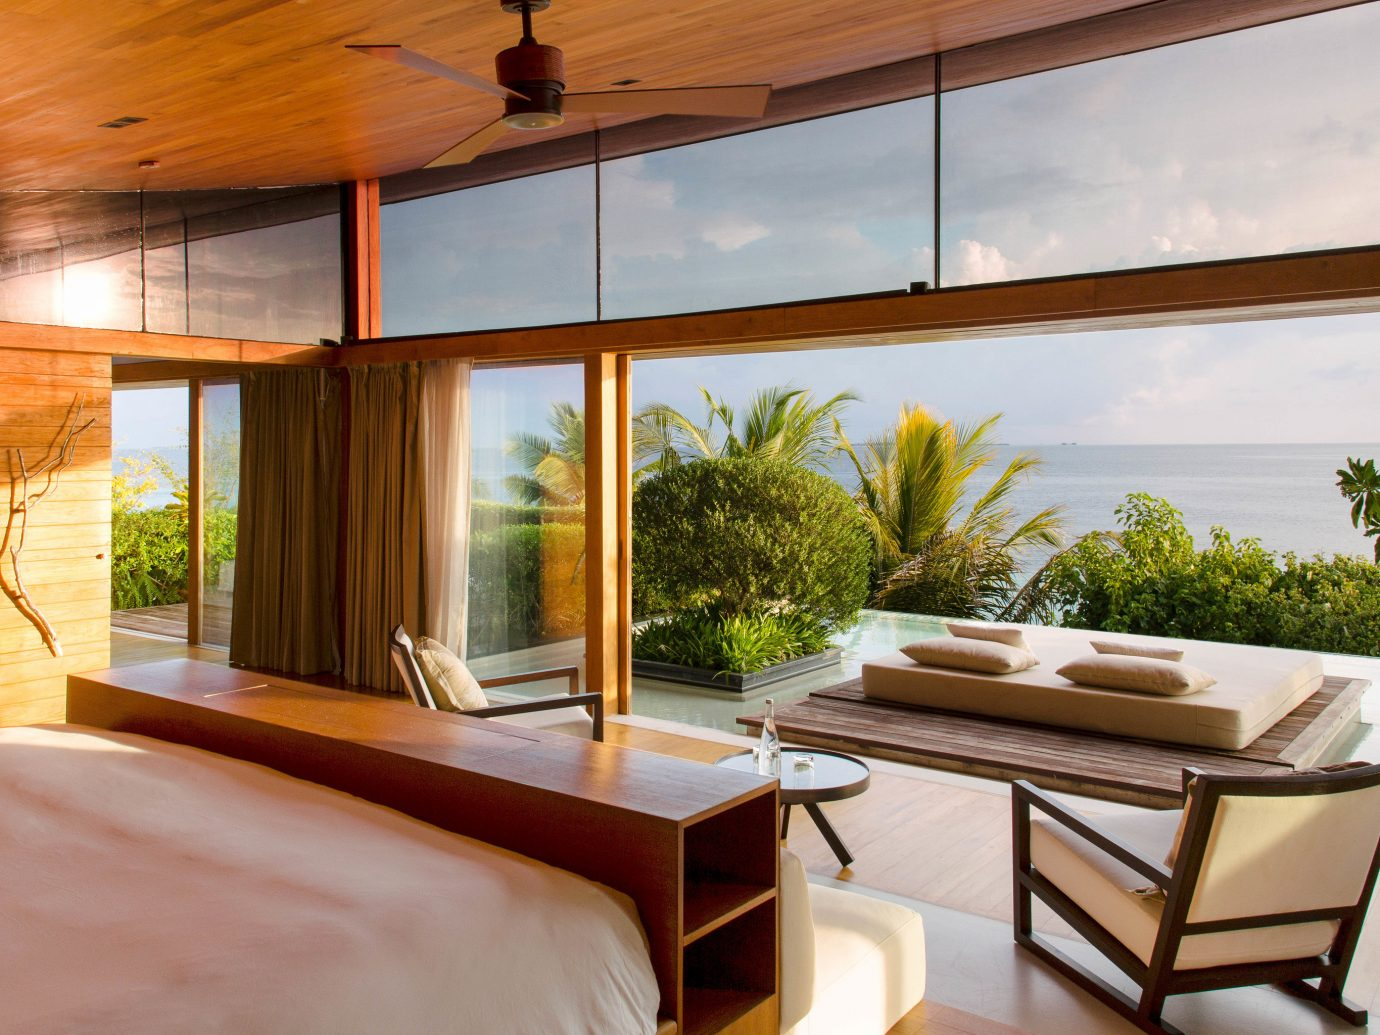 Bedroom at Coco Privé, Maldives